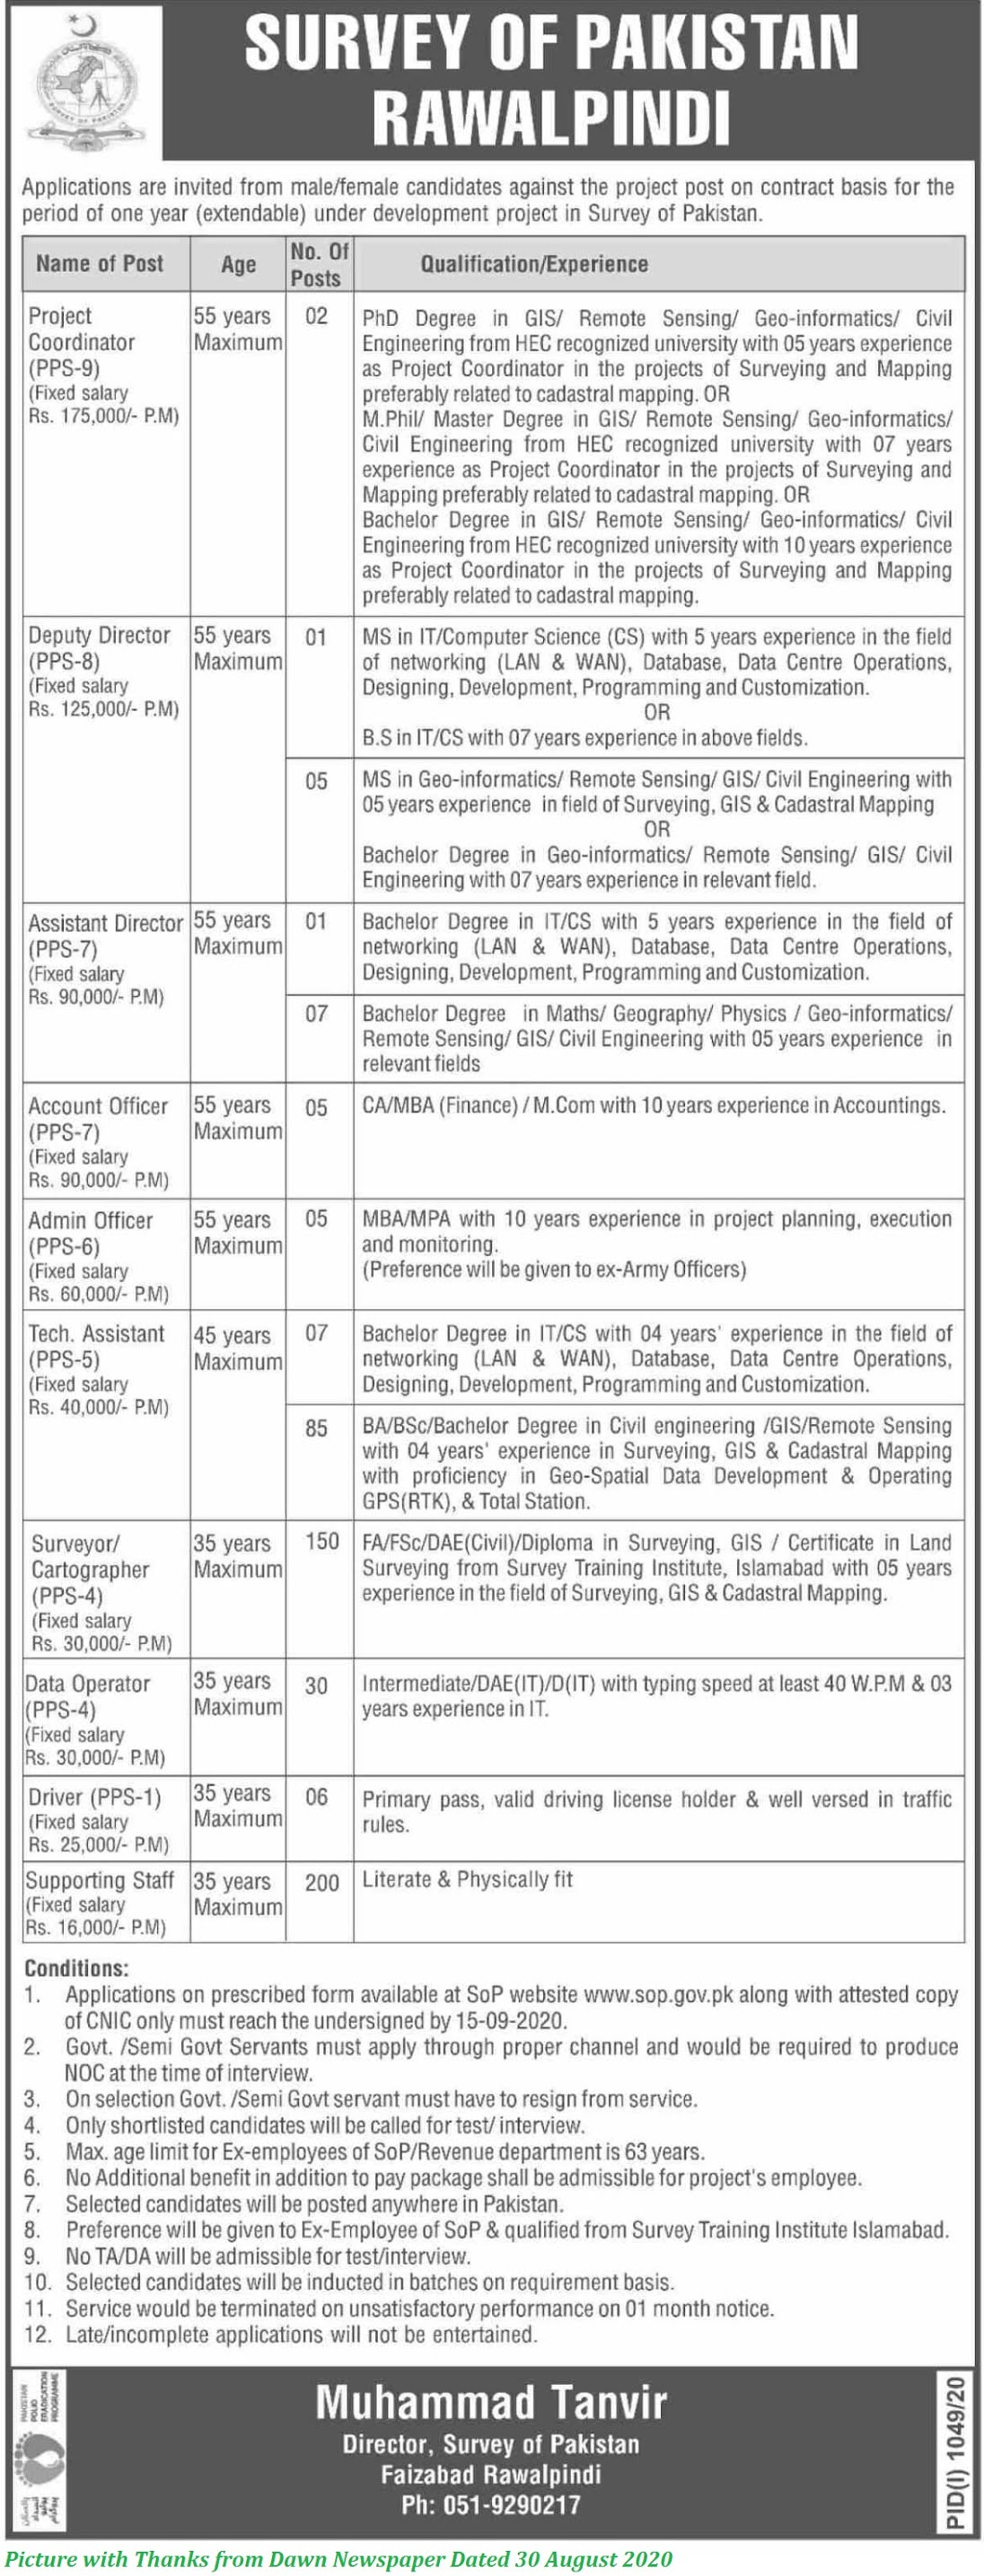 Survey of Pakistan Jobs 2020 - Latest Federal Govt Jobs 2020 in Survry of Pakistan 500+ Posts Announced